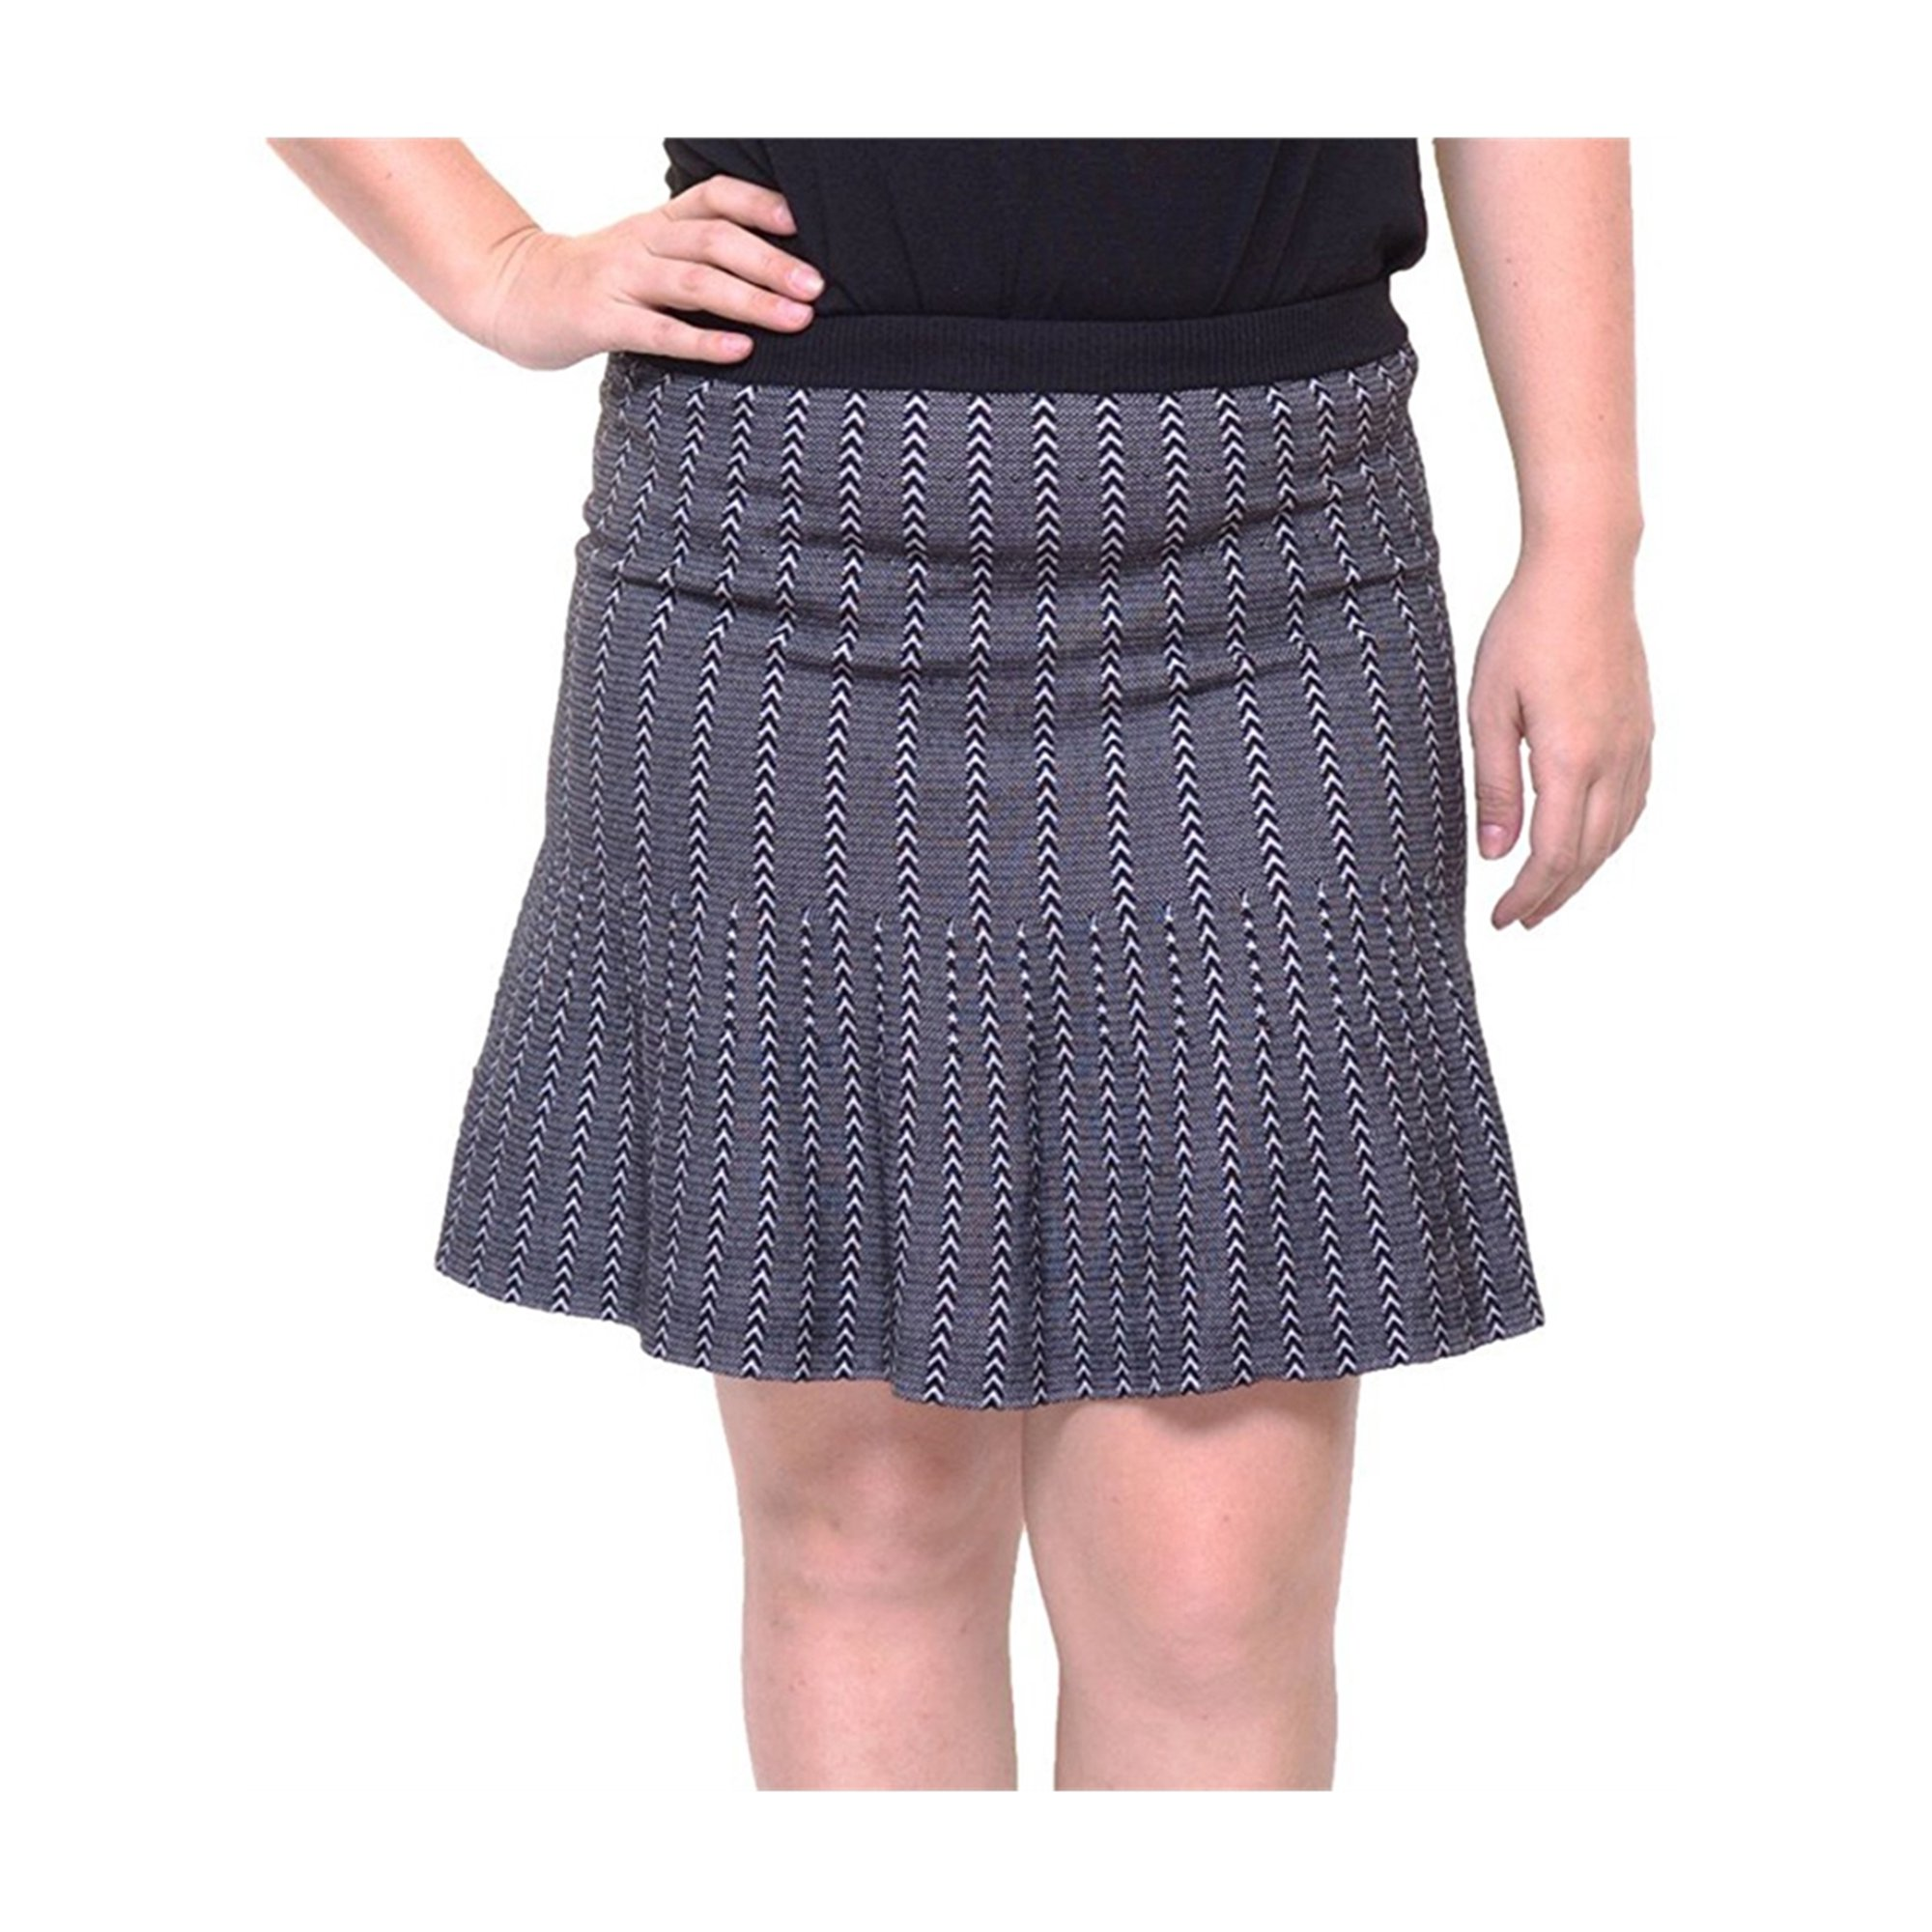 061b617607d8 Rachel Roy Womens Striped A-line Skirt blackwhite S | Walmart Canada